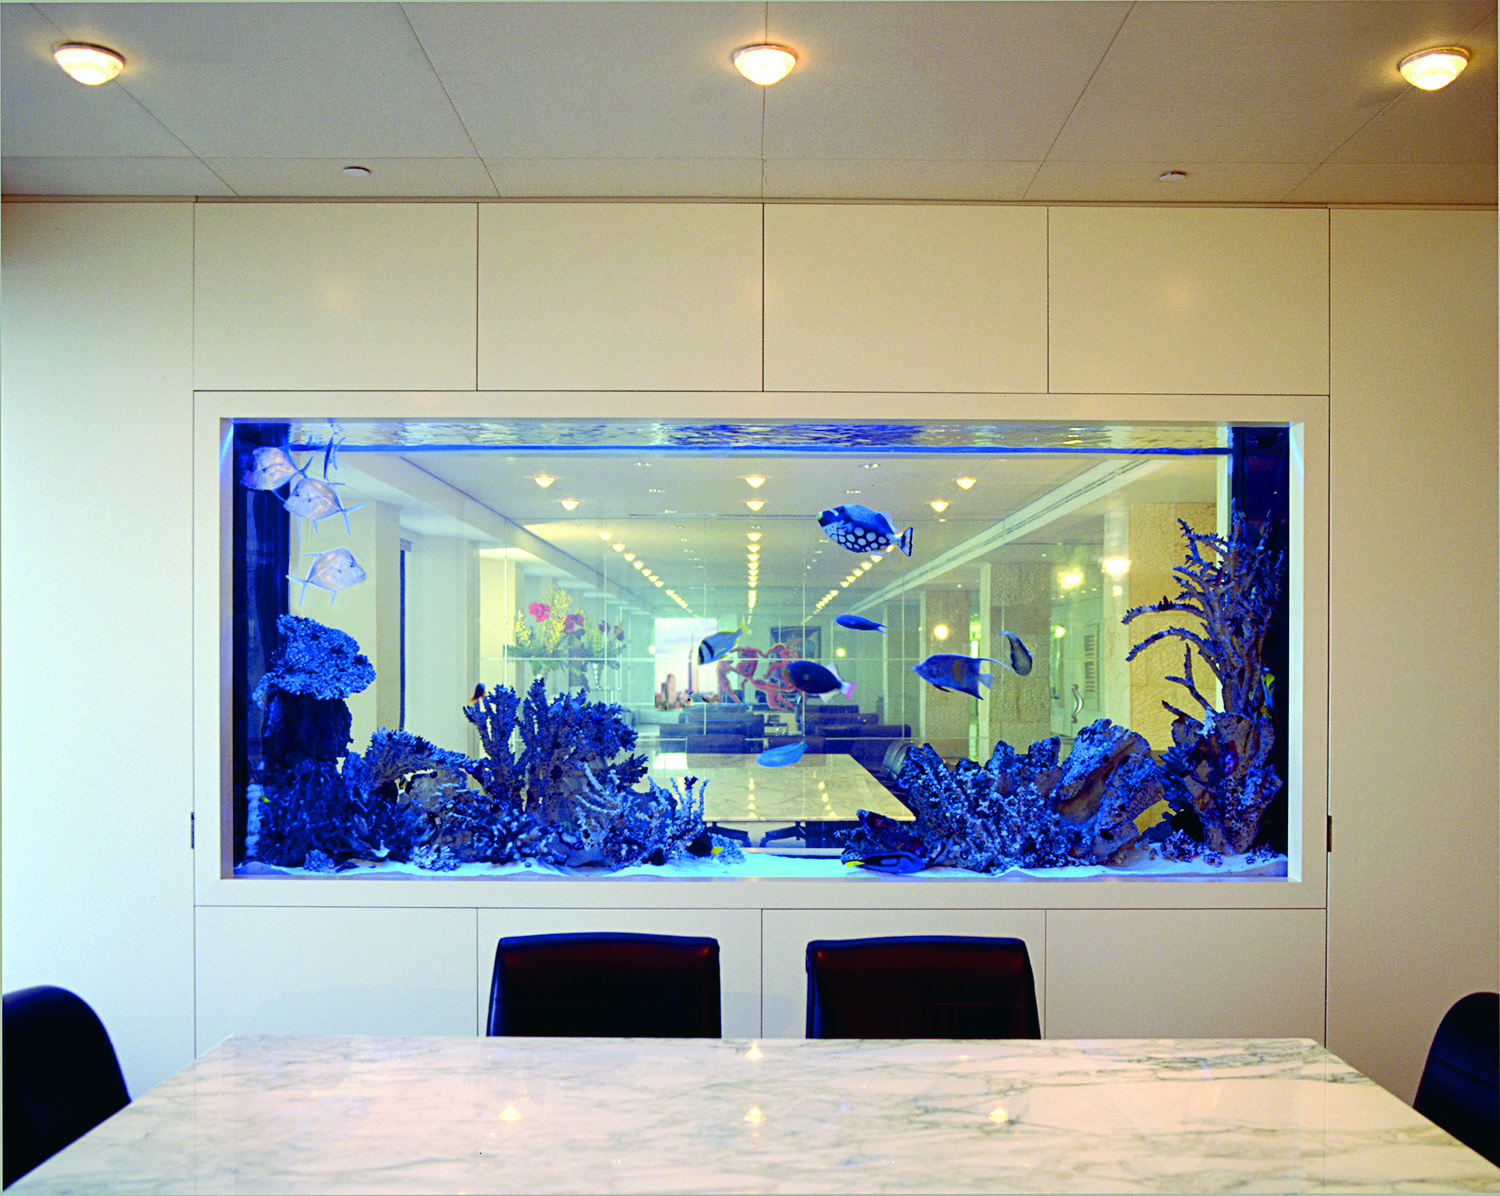 This 1,000 –gallon saltwater aquarium divides two conference rooms on the 49th floor of a Manhattan office building.